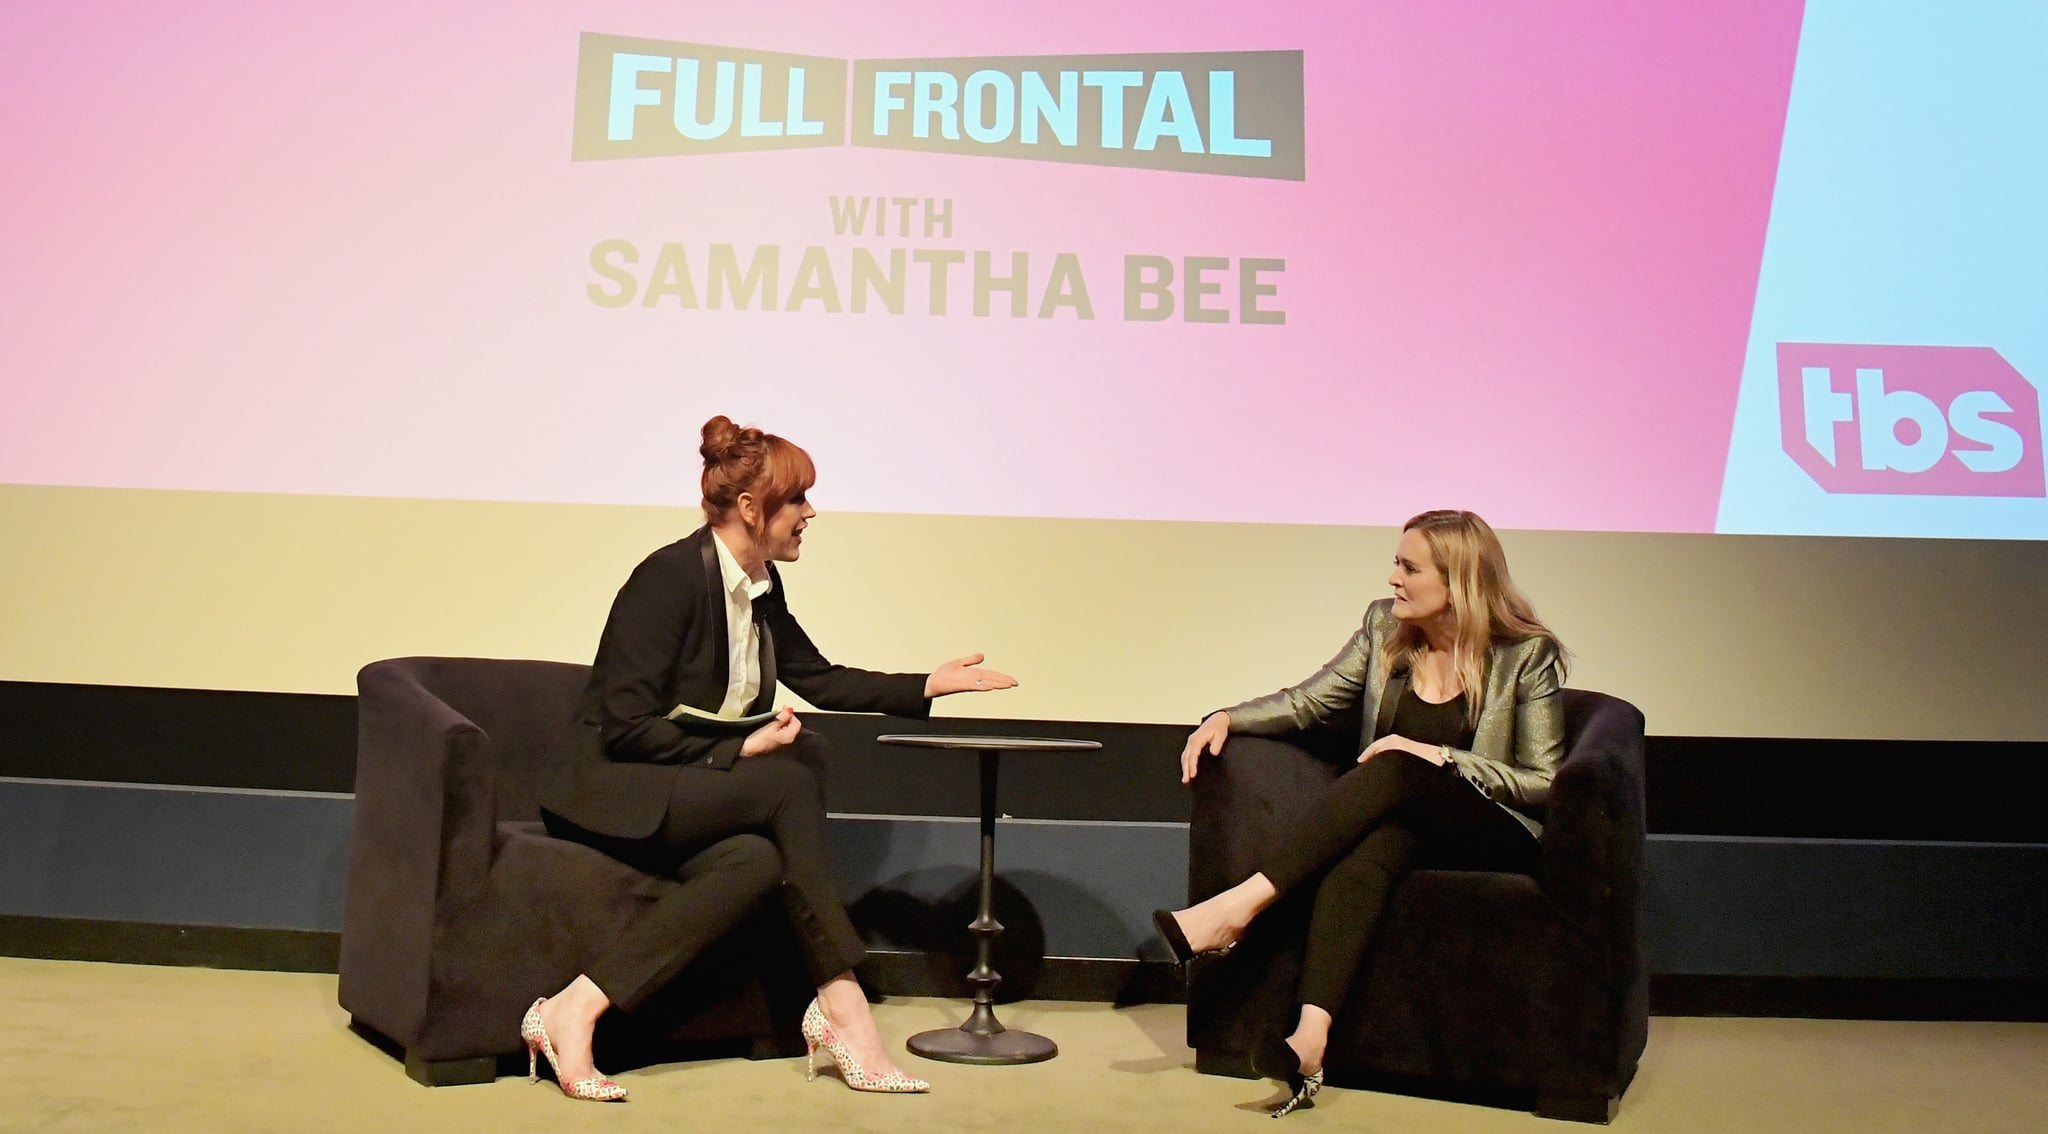 BEVERLY HILLS, CA - MAY 24:  Moderator Molly Ringwald (L) and Executive Producer & Host Samantha Bee speak onstage during 'Full Frontal with Samantha Bee' FYC Event Los Angeles at The WGA Theater on May 24, 2018 in Beverly Hills, California.  (Photo by Charley Gallay/Getty Images for TBS/Turner)